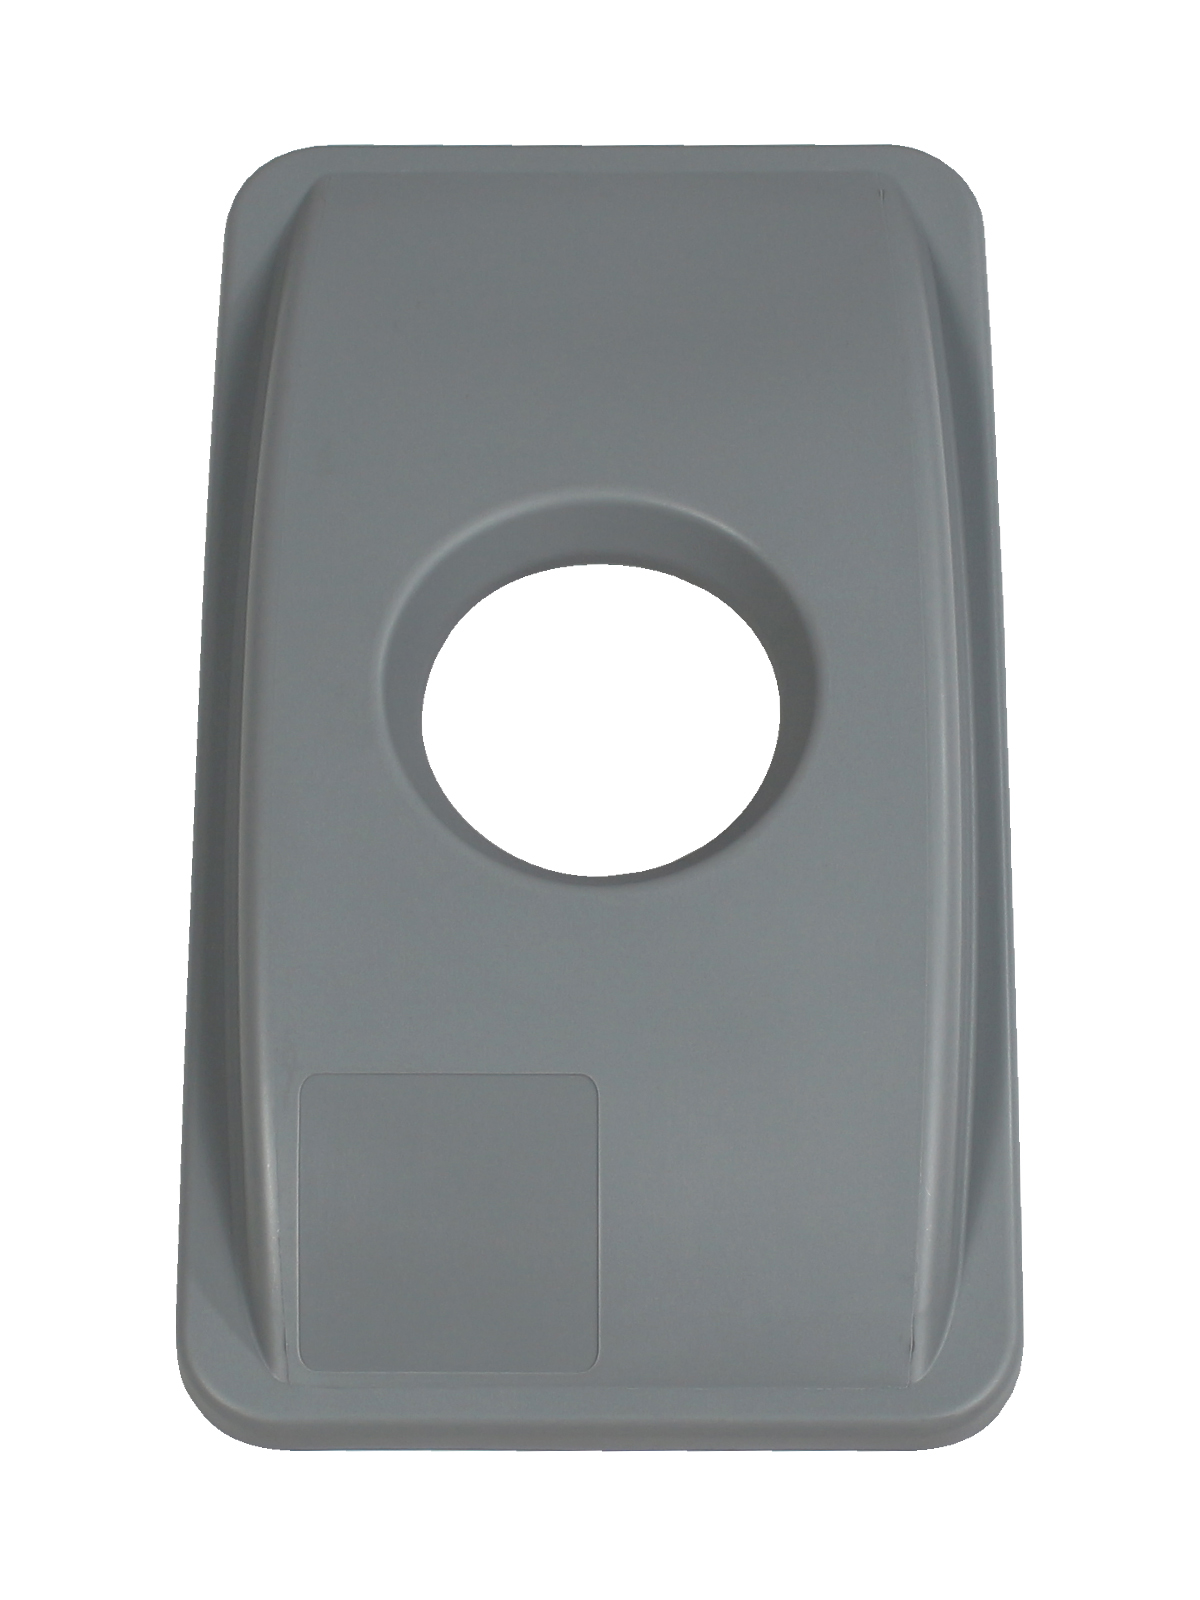 WASTE WATCHER - Lid - Circle - Executive Grey